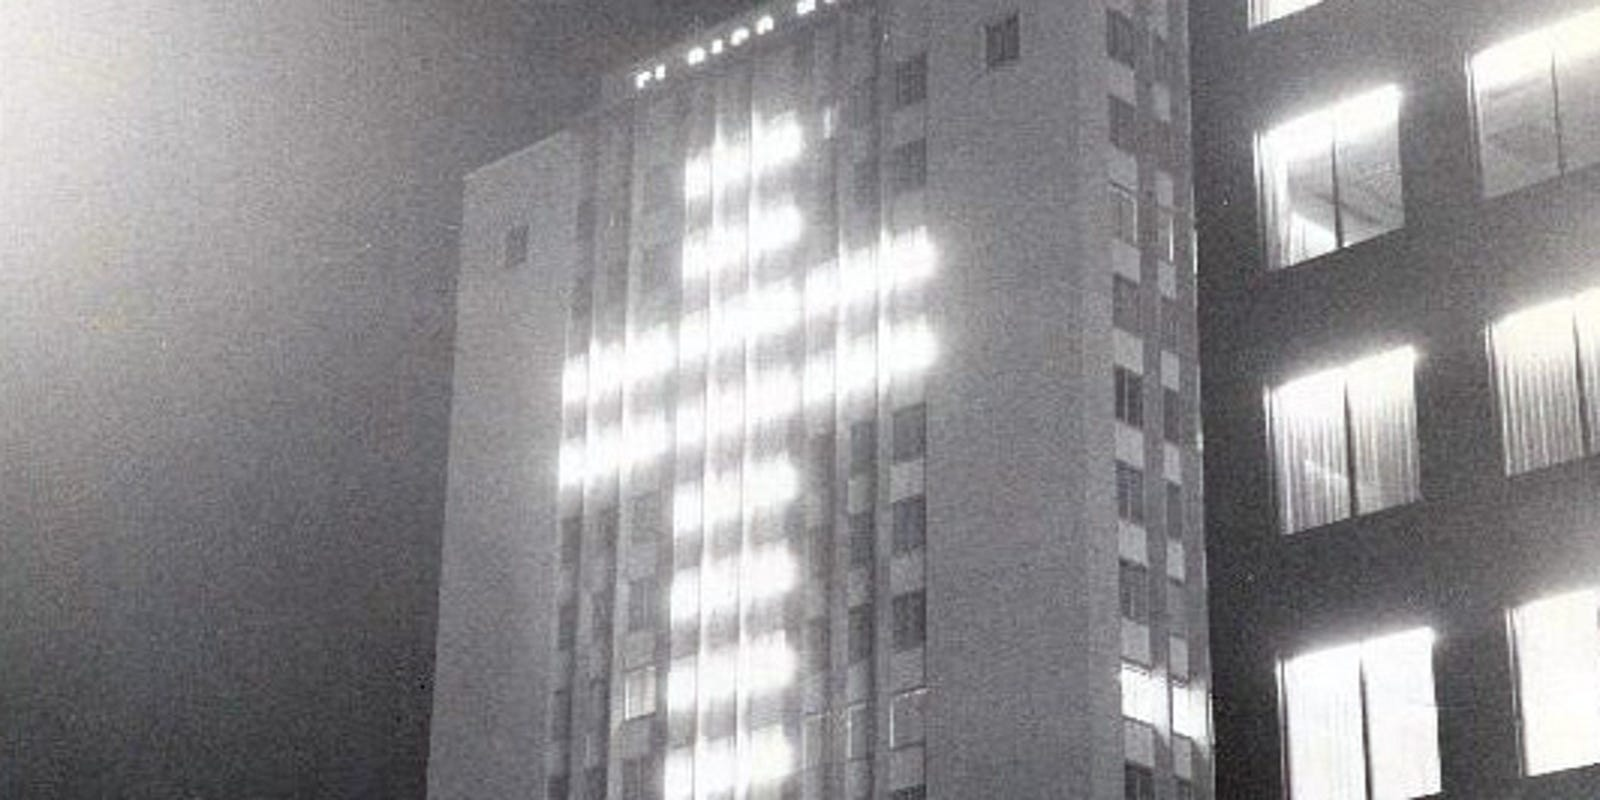 Blue Flame, first lit in 1955, to light up Downtown skyline again